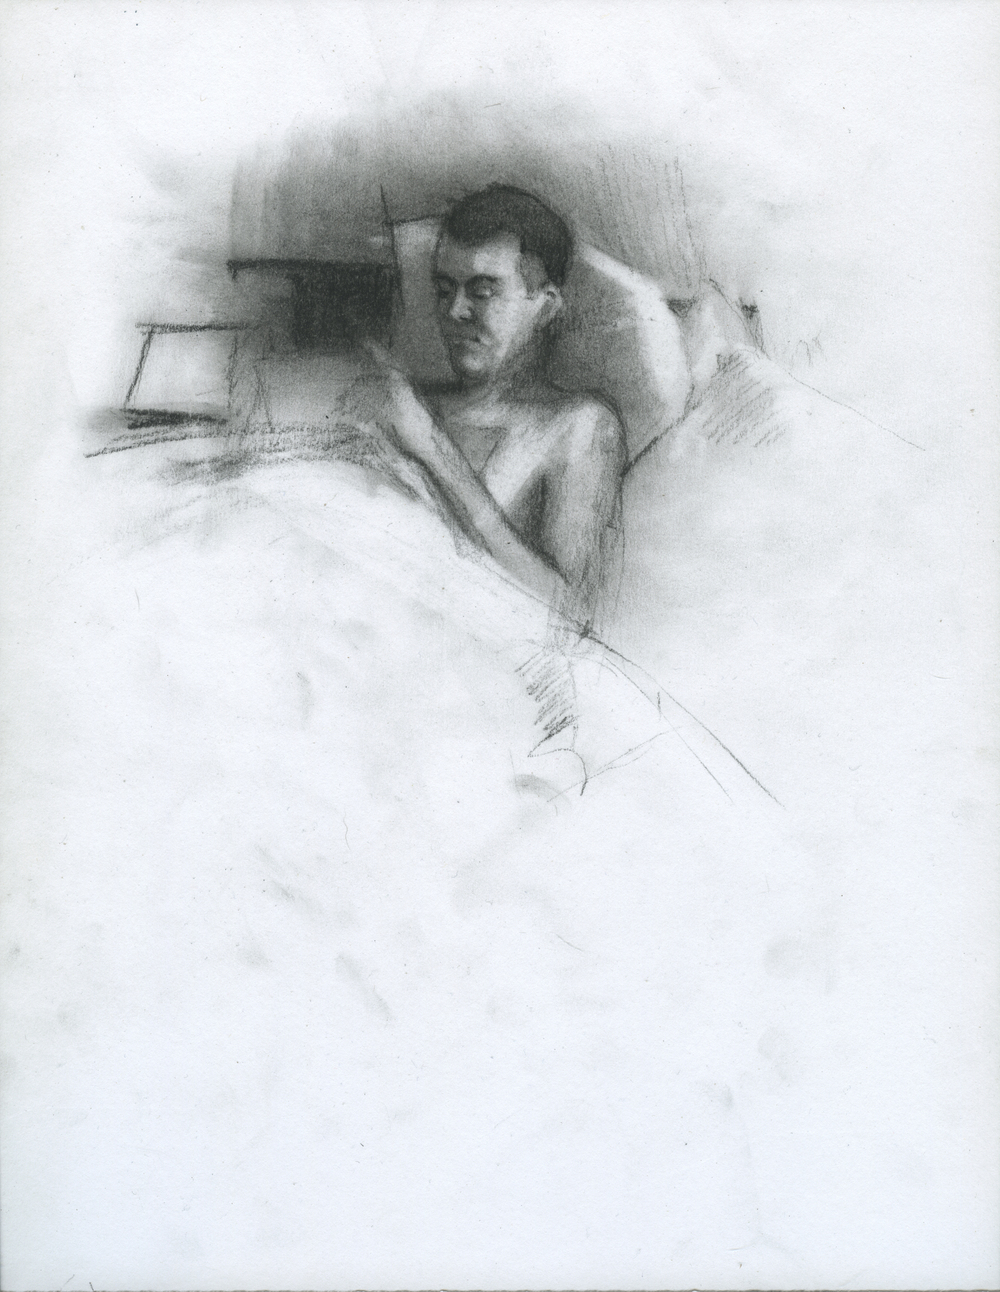 """Complicated In Practice, charcoal on paper, 11"""" x 8.5"""", 2014"""